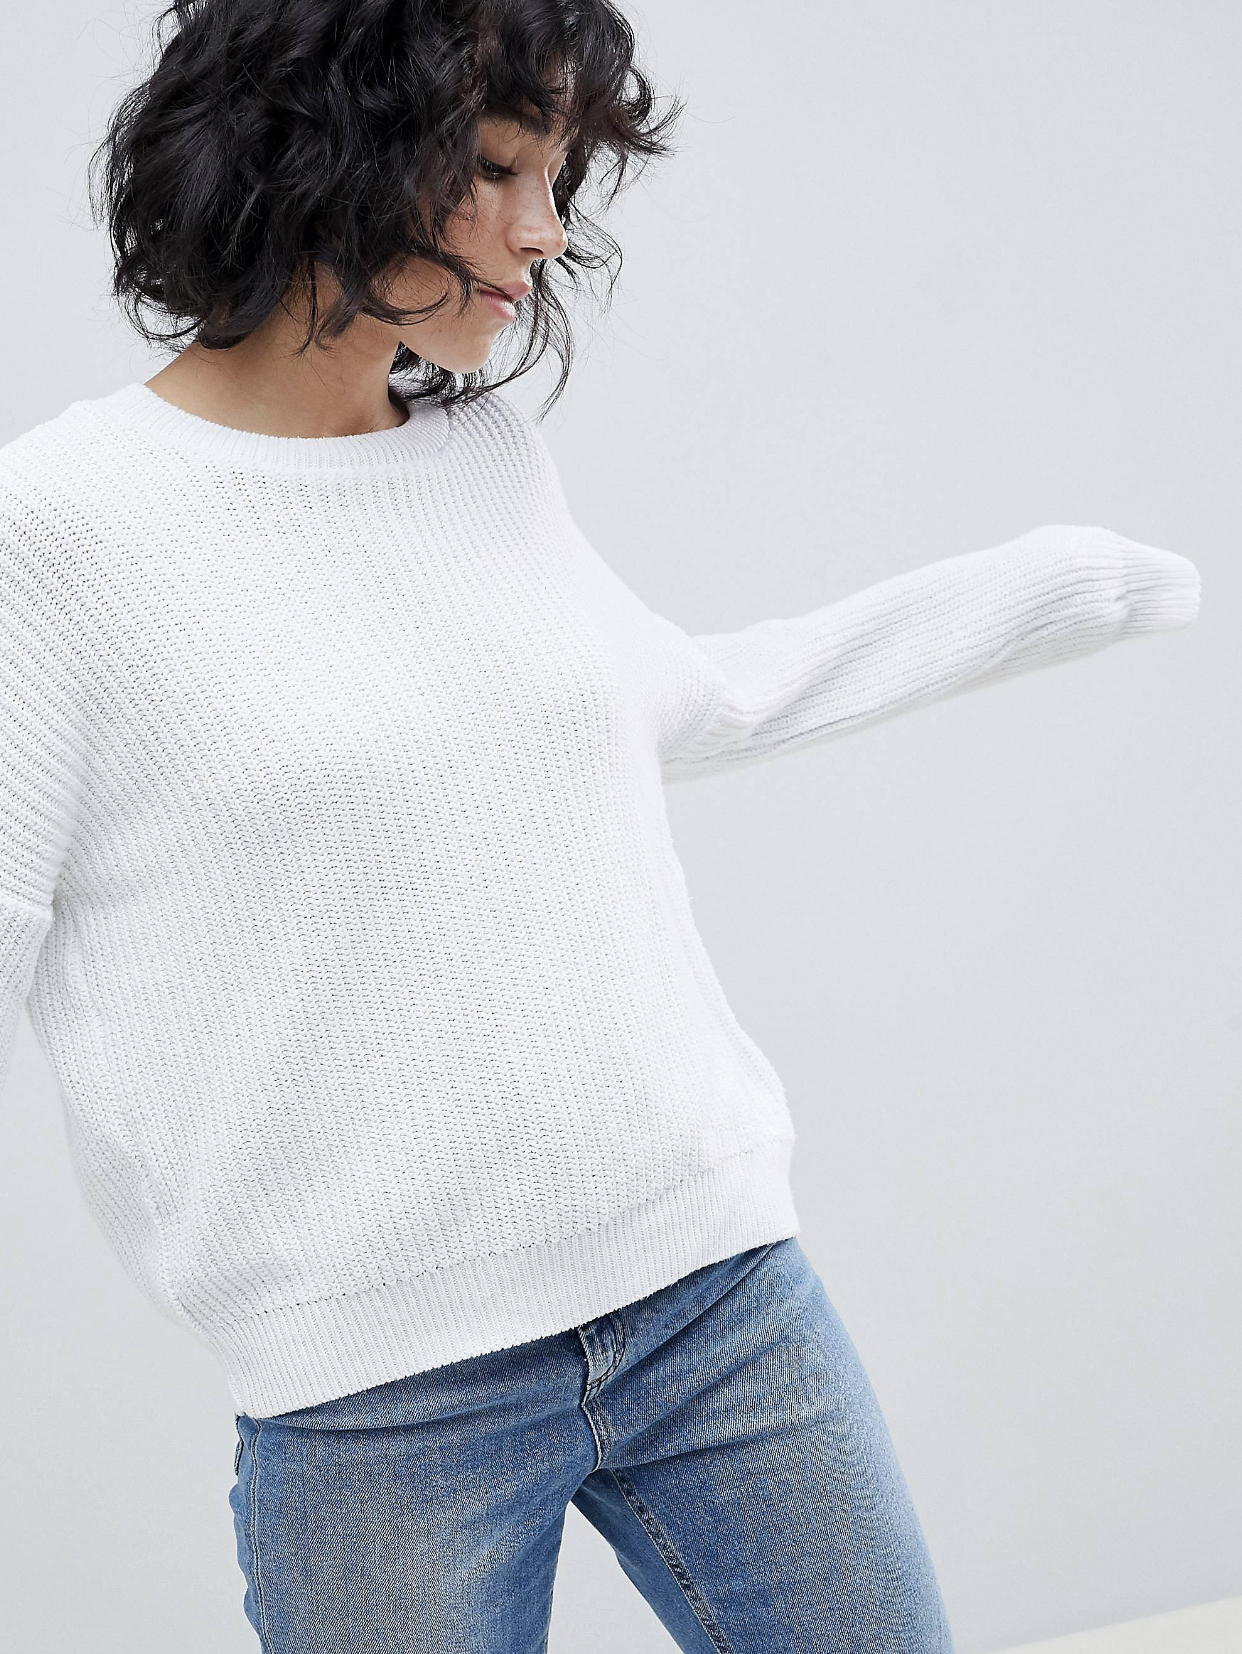 SL1531 Ex Chainstore White Chunky Oversized Crop Jumper x15